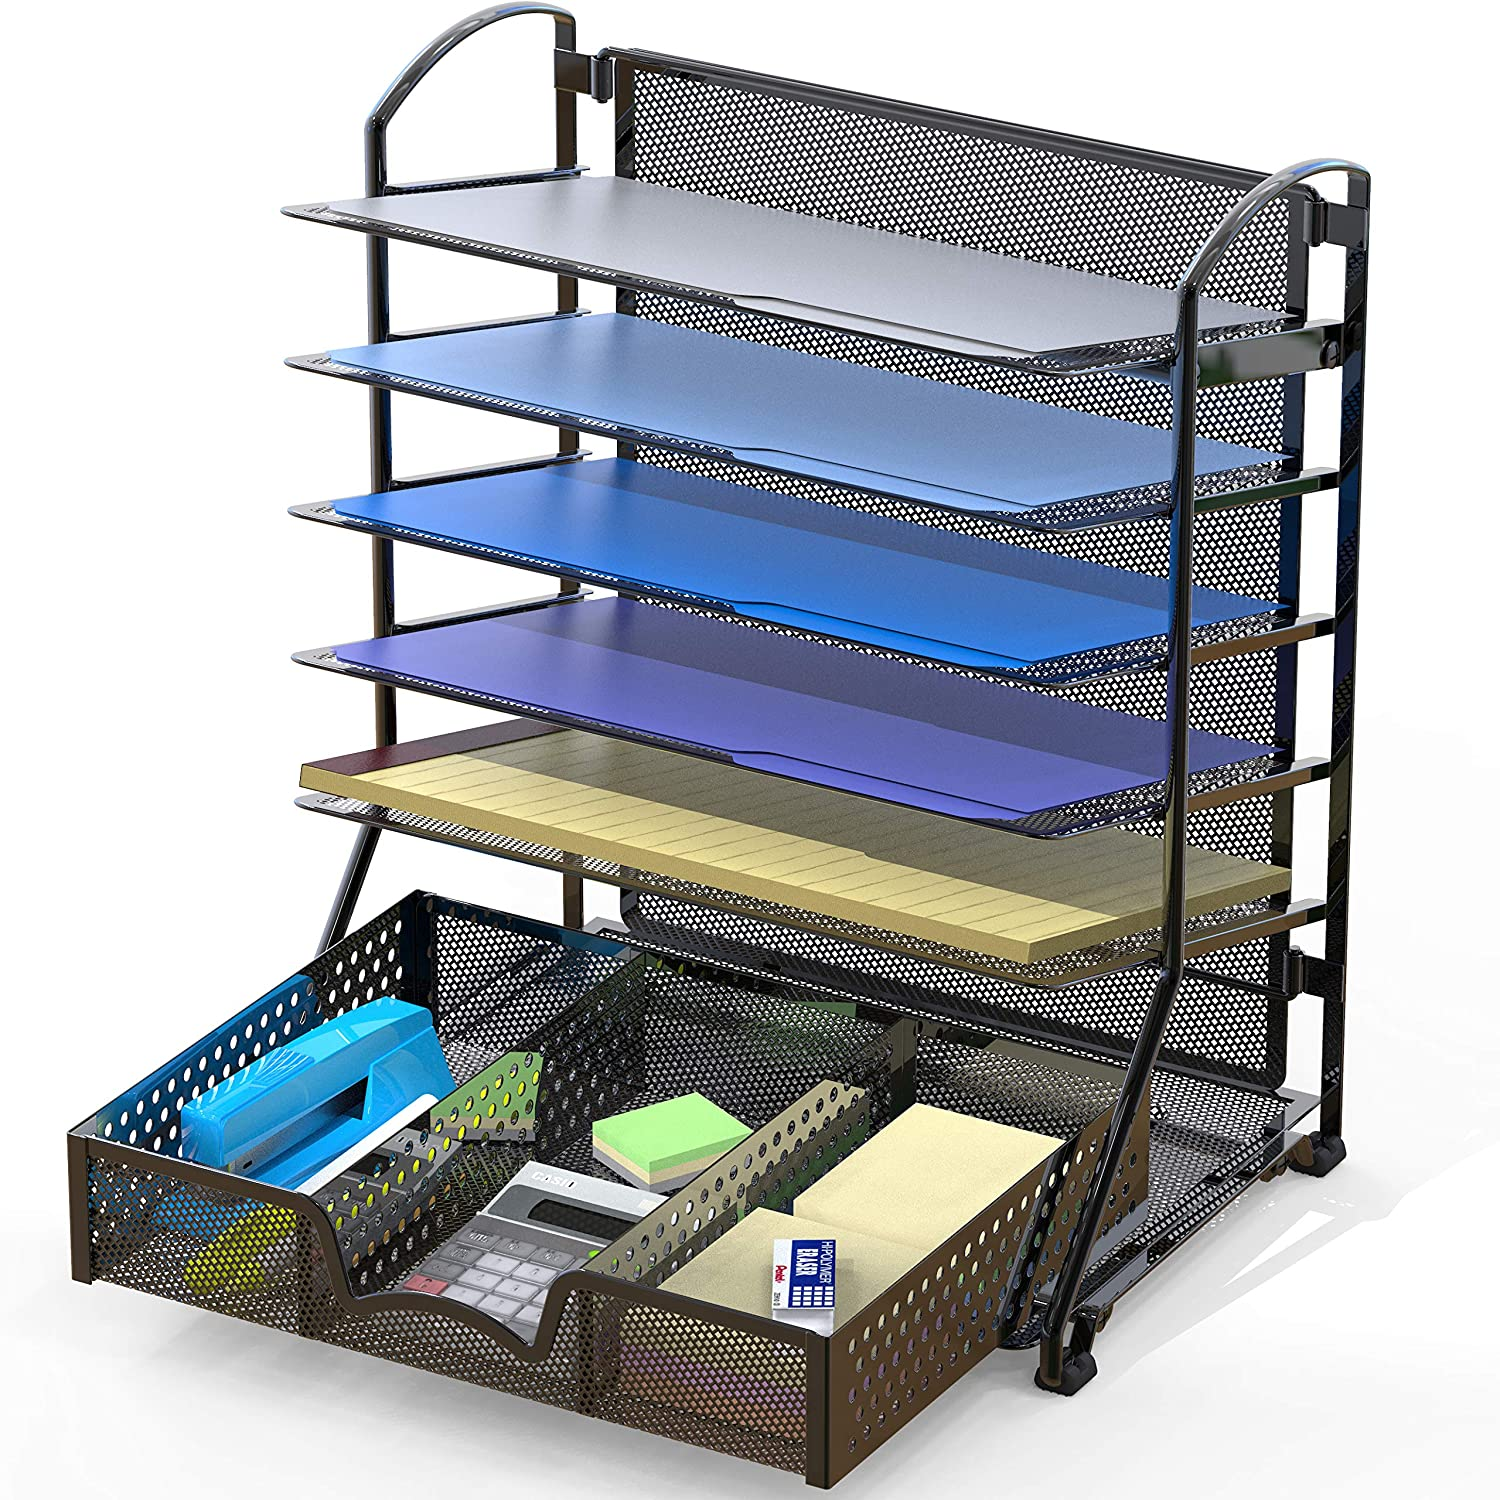 Max 71% OFF SimpleHouseware 6 Tucson Mall Trays Desk Document with S File Organizer Tray